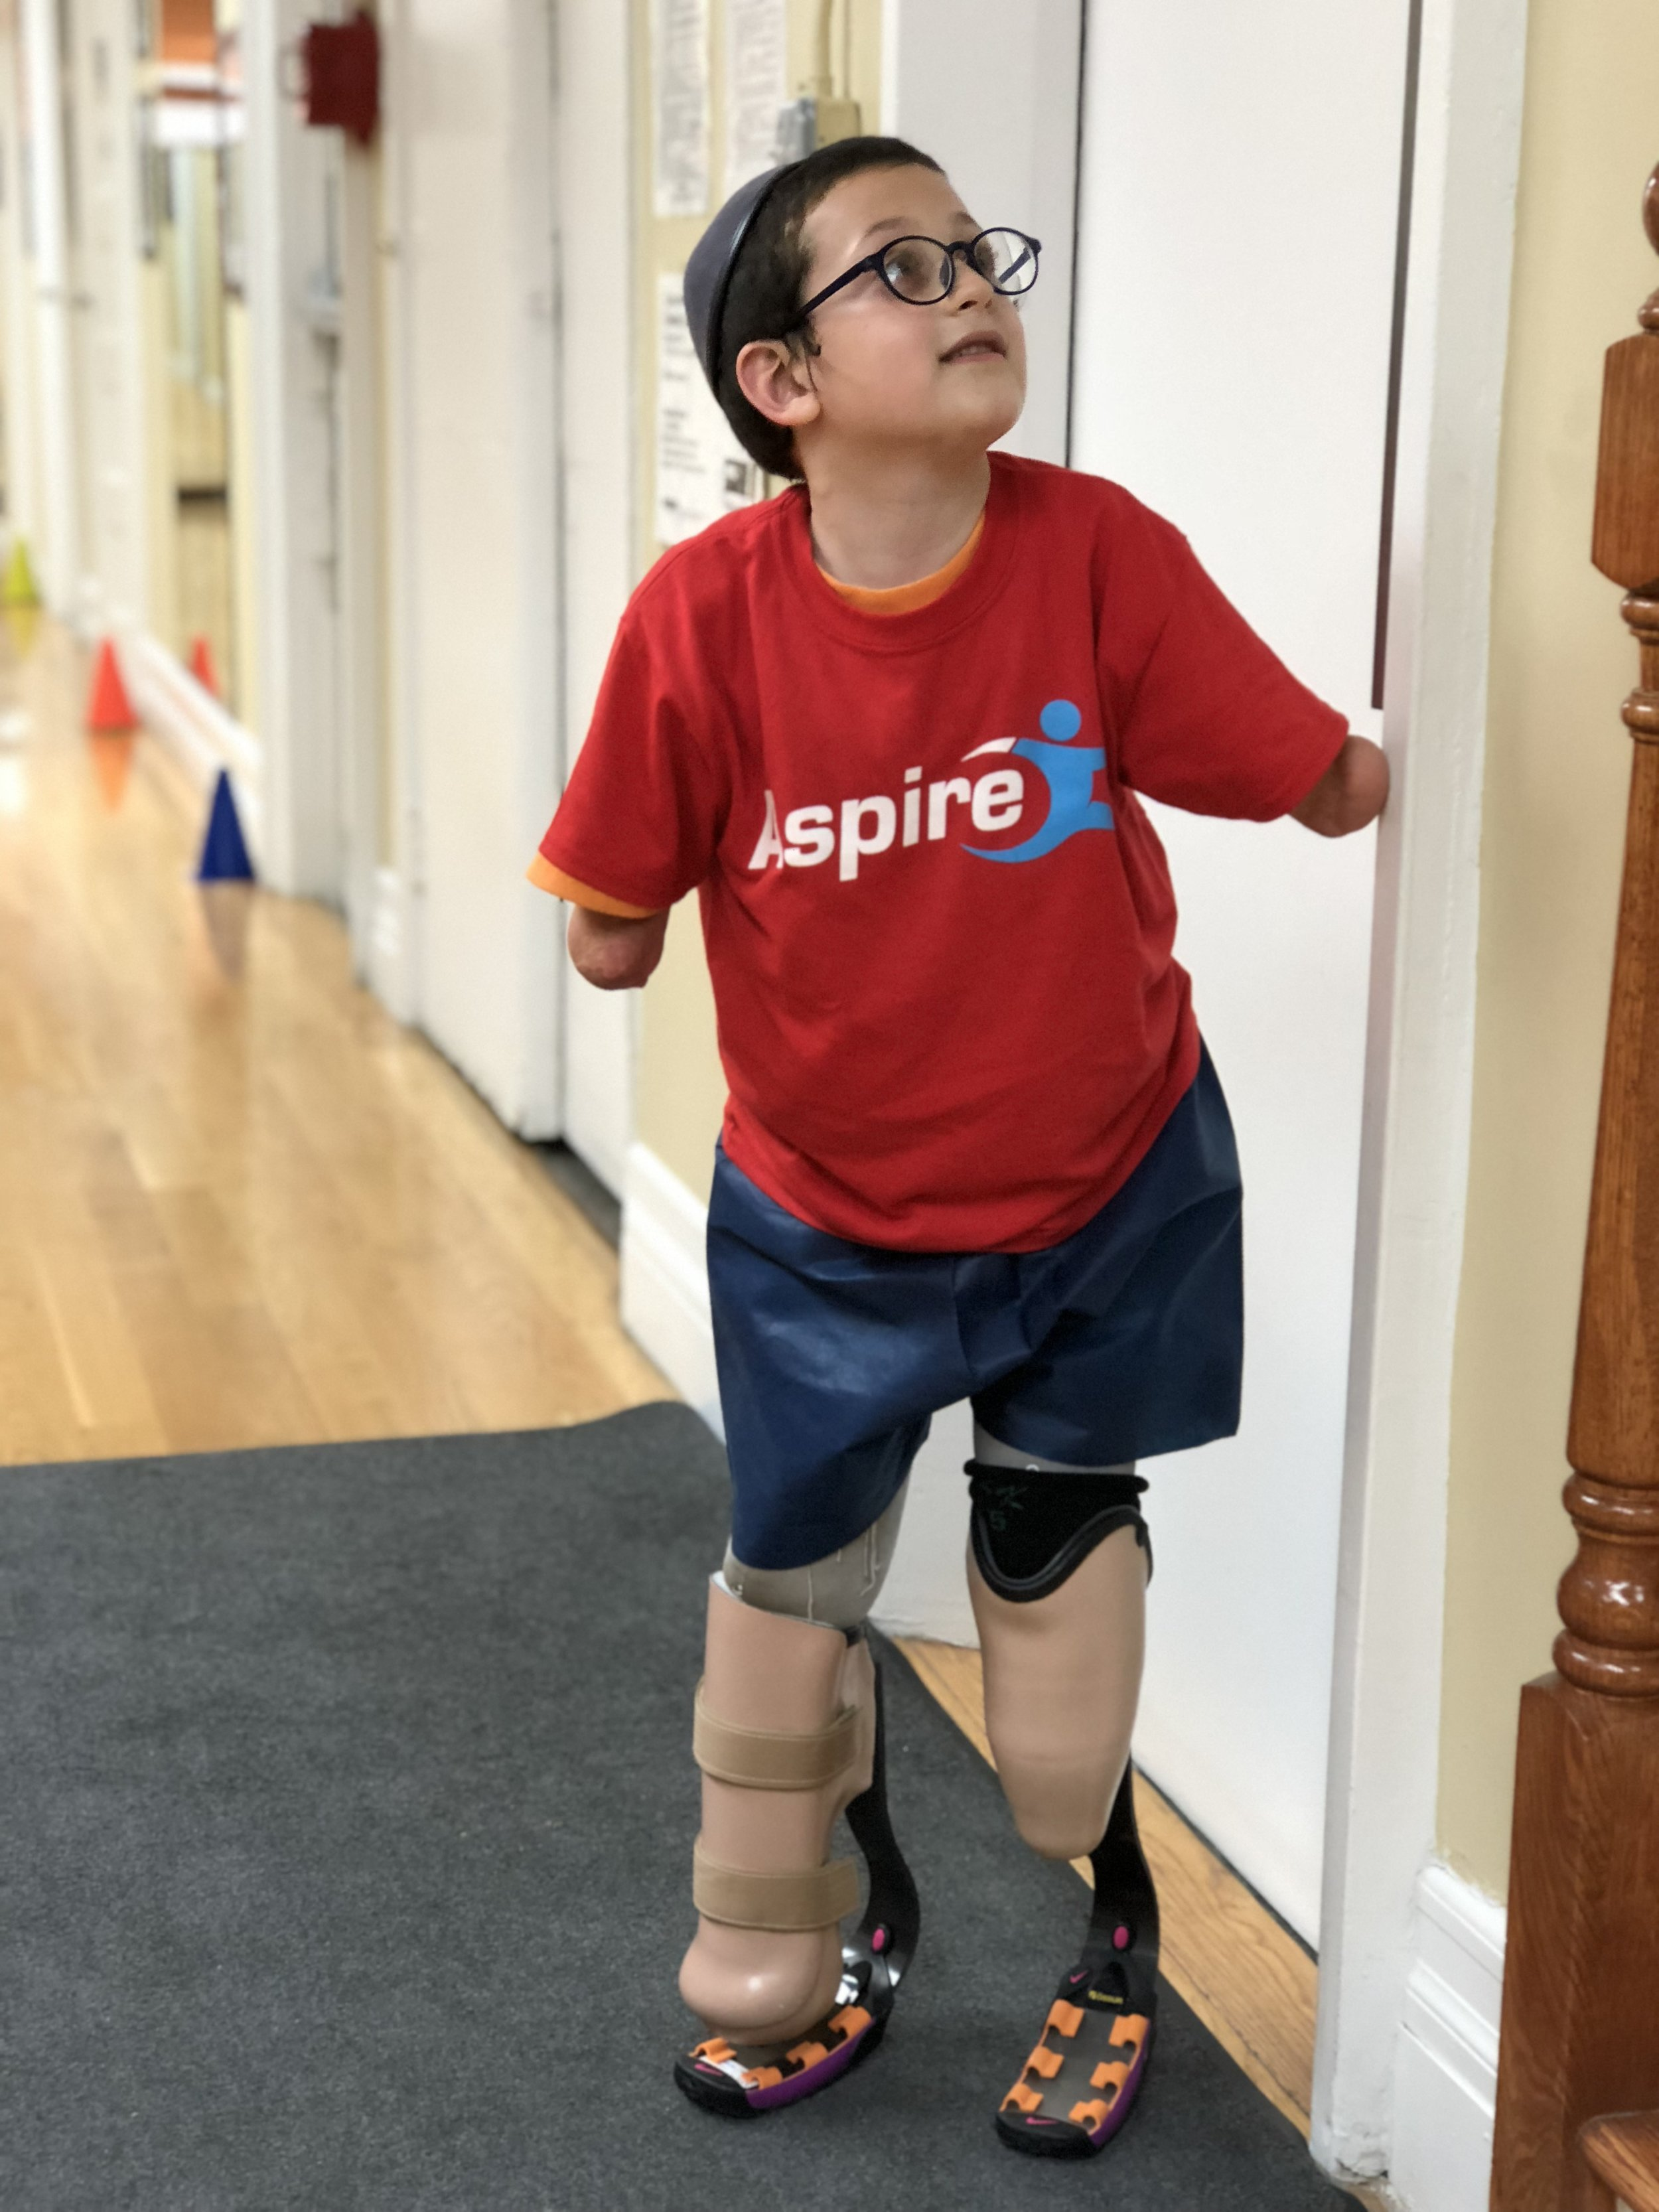 Moshe - As a result of meningitis at 6 months Moshe became a quadrilateral amputee. ASPIRE has provided Moshe with running prosthesis so he is able to run around with his friends at camp.